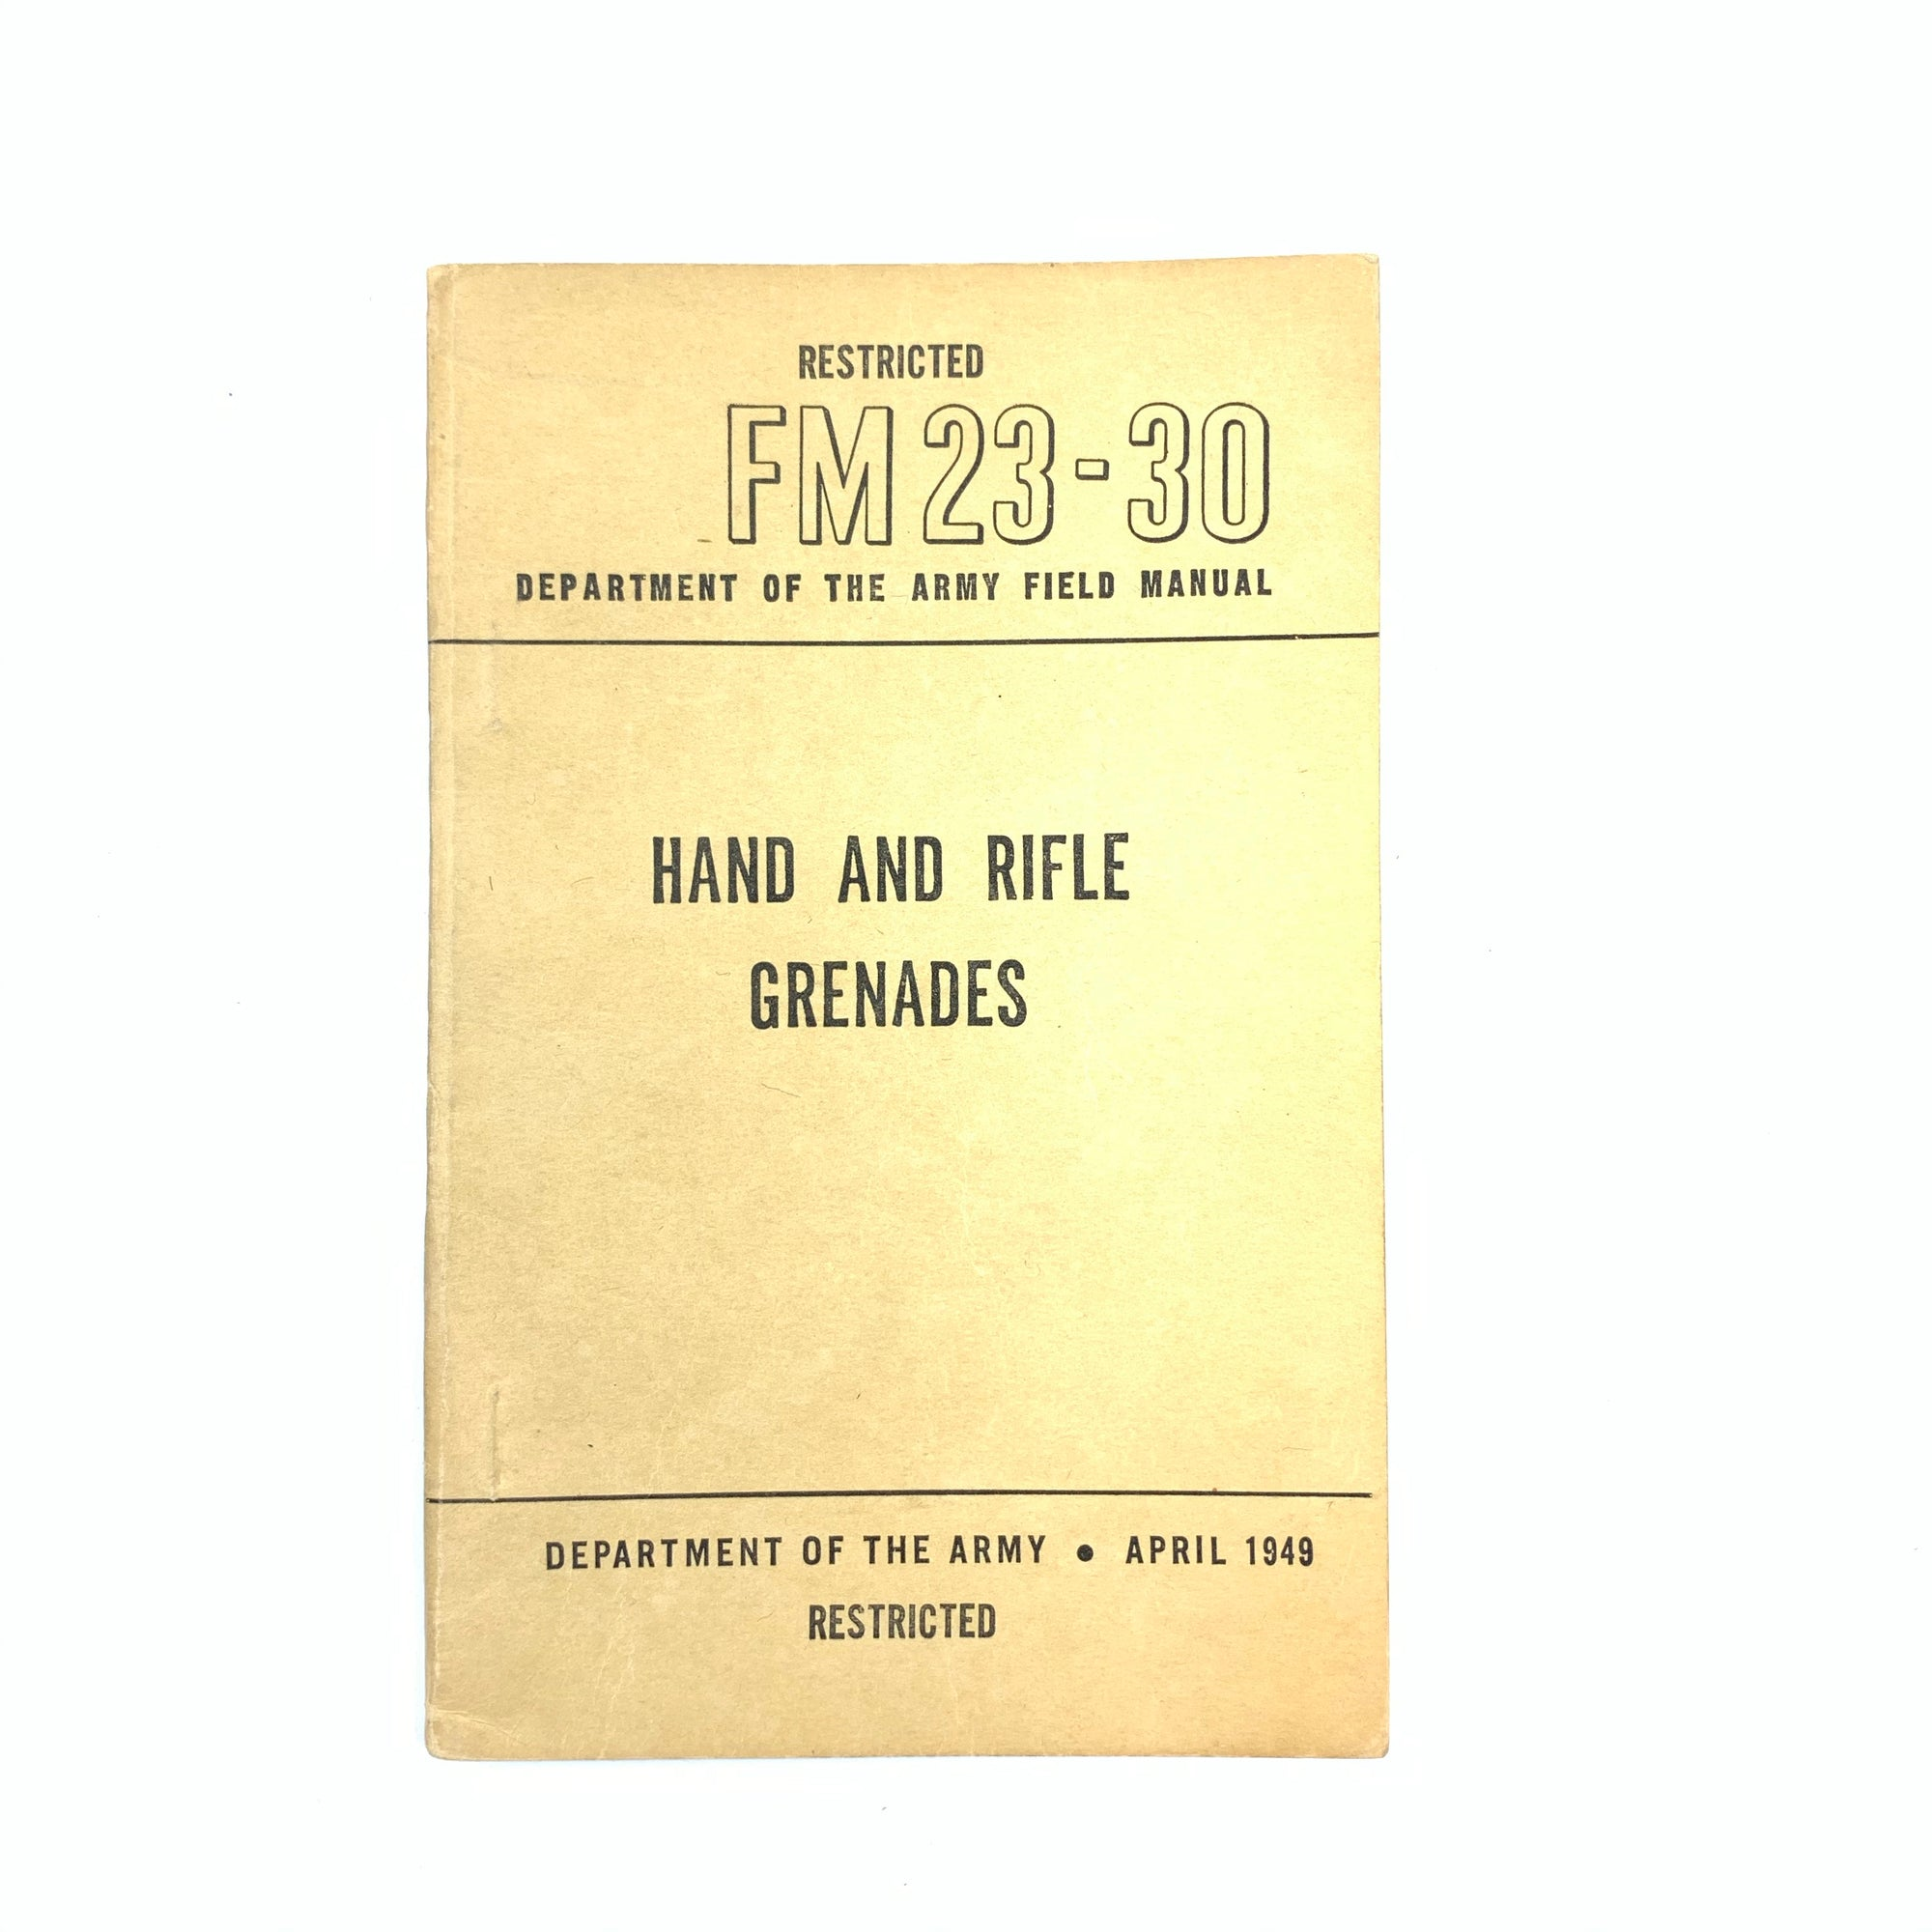 FM 23-30 Dept of the Army US Hand and Rifle Grenades 1949 Small SB Book 116 pgs